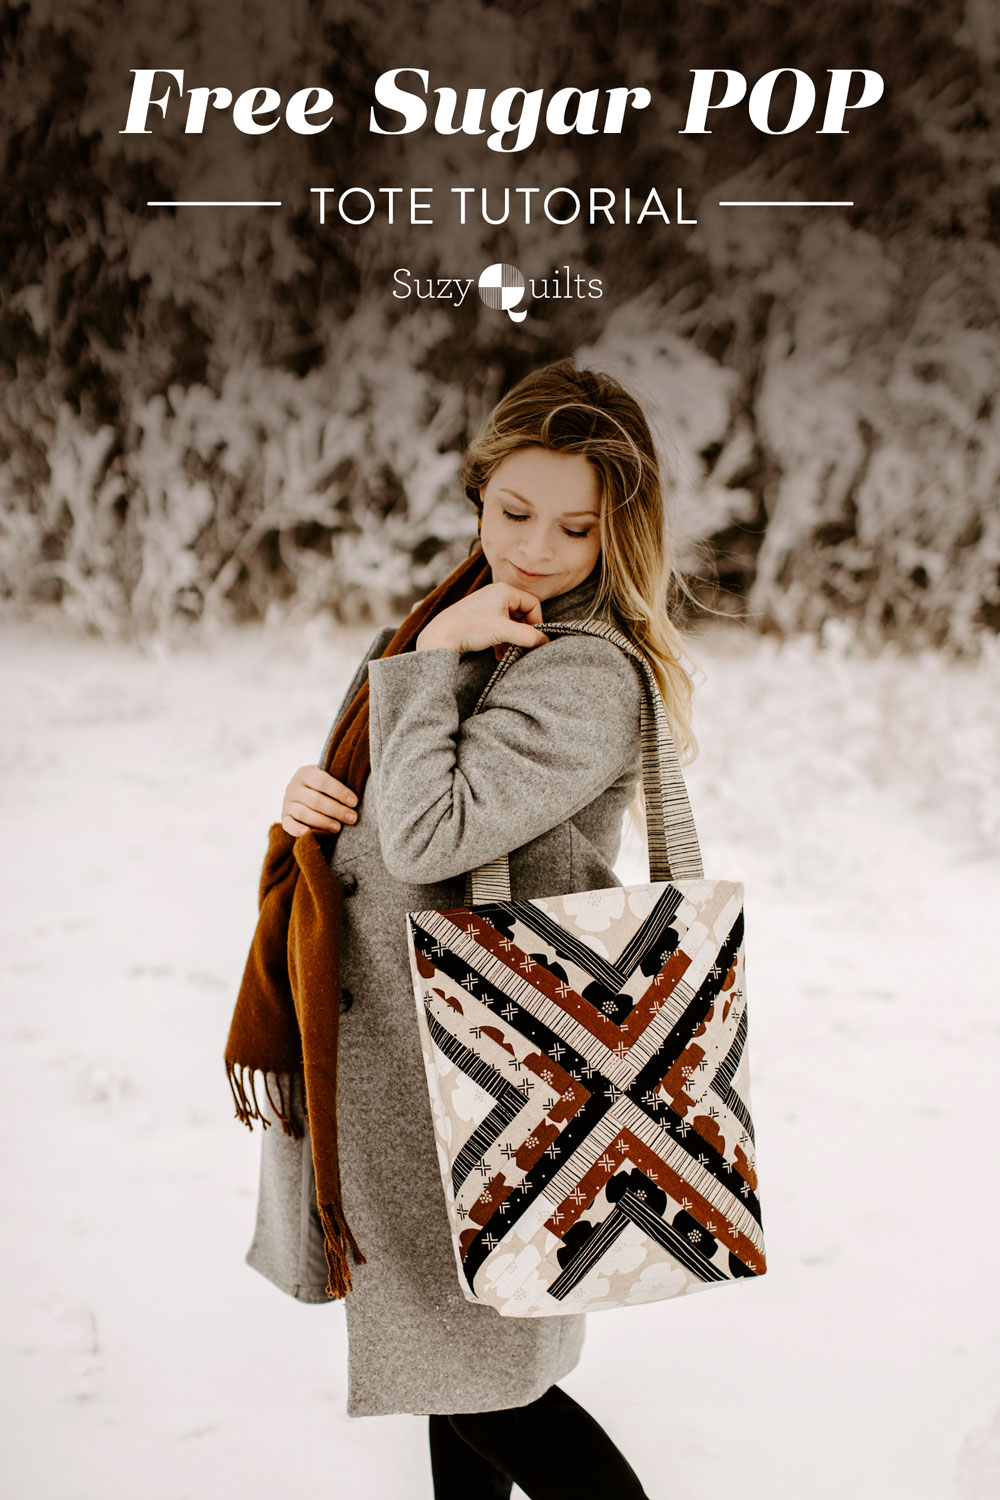 This beginner friendly Sugar POP trendy tote tutorial walks you through step by step instructions to create a beautiful quilted tote bag! suzyquilts.com #totetutorial #DIYtote